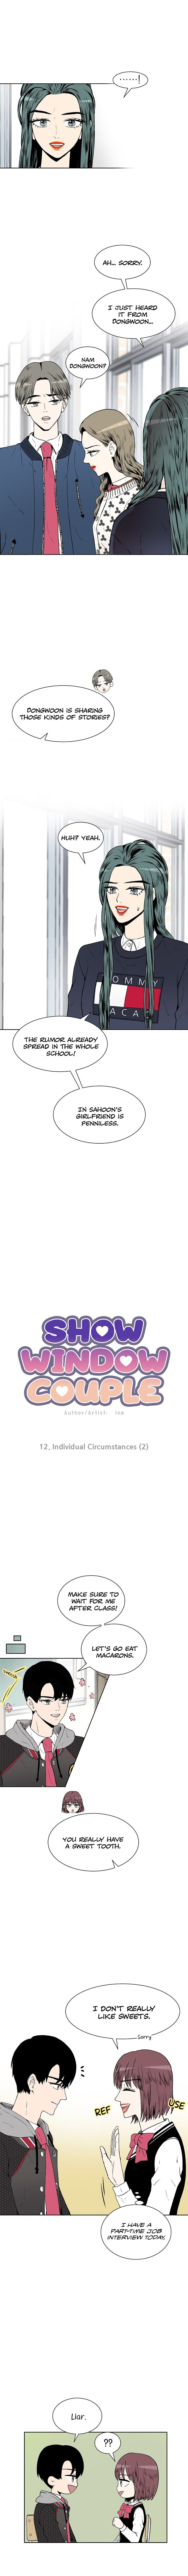 Show Window Couple - chapter 12 - #3